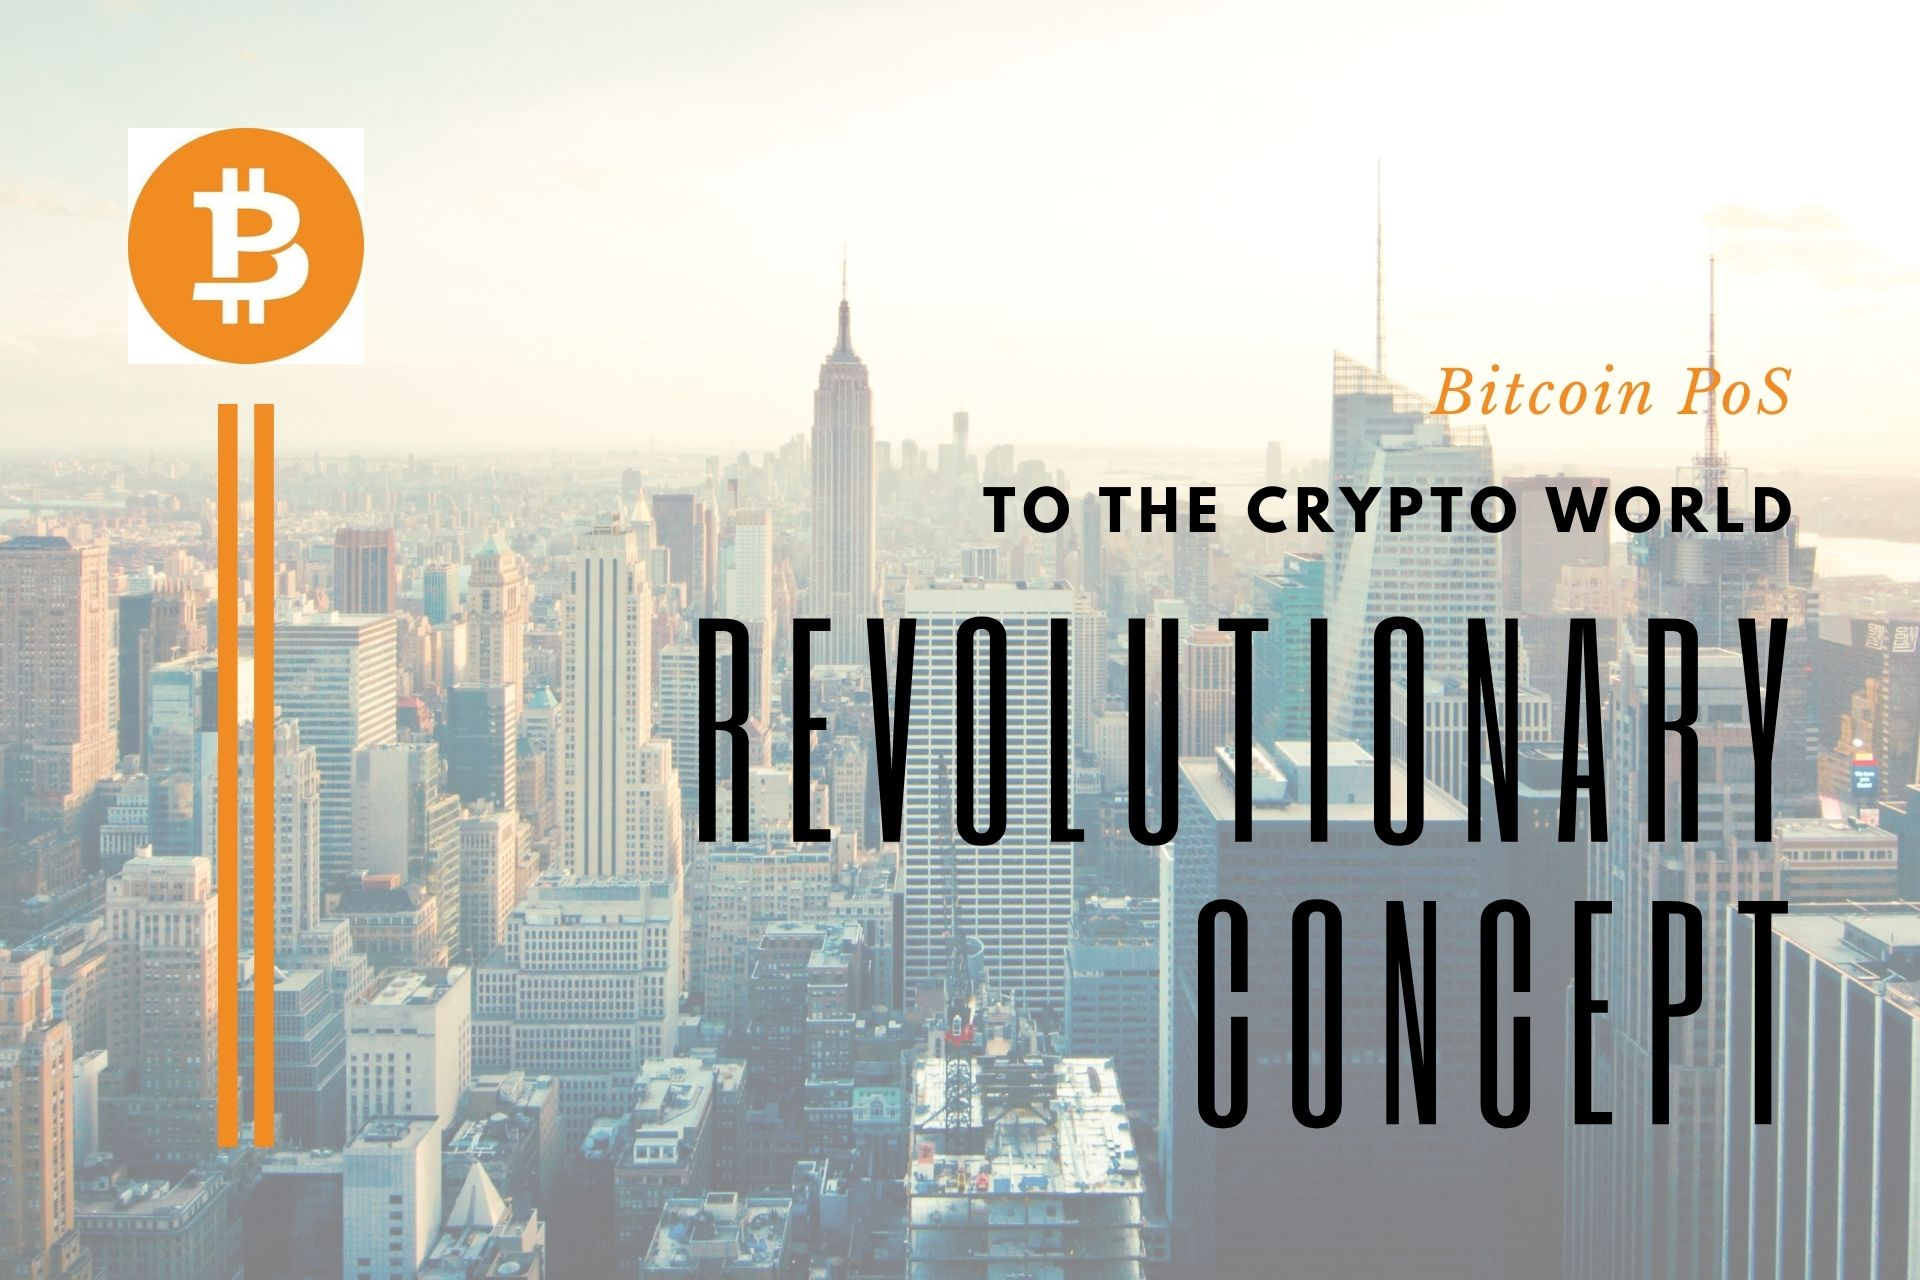 BitcoinPoS | Bringing another revolutionary concept to the Crypto World